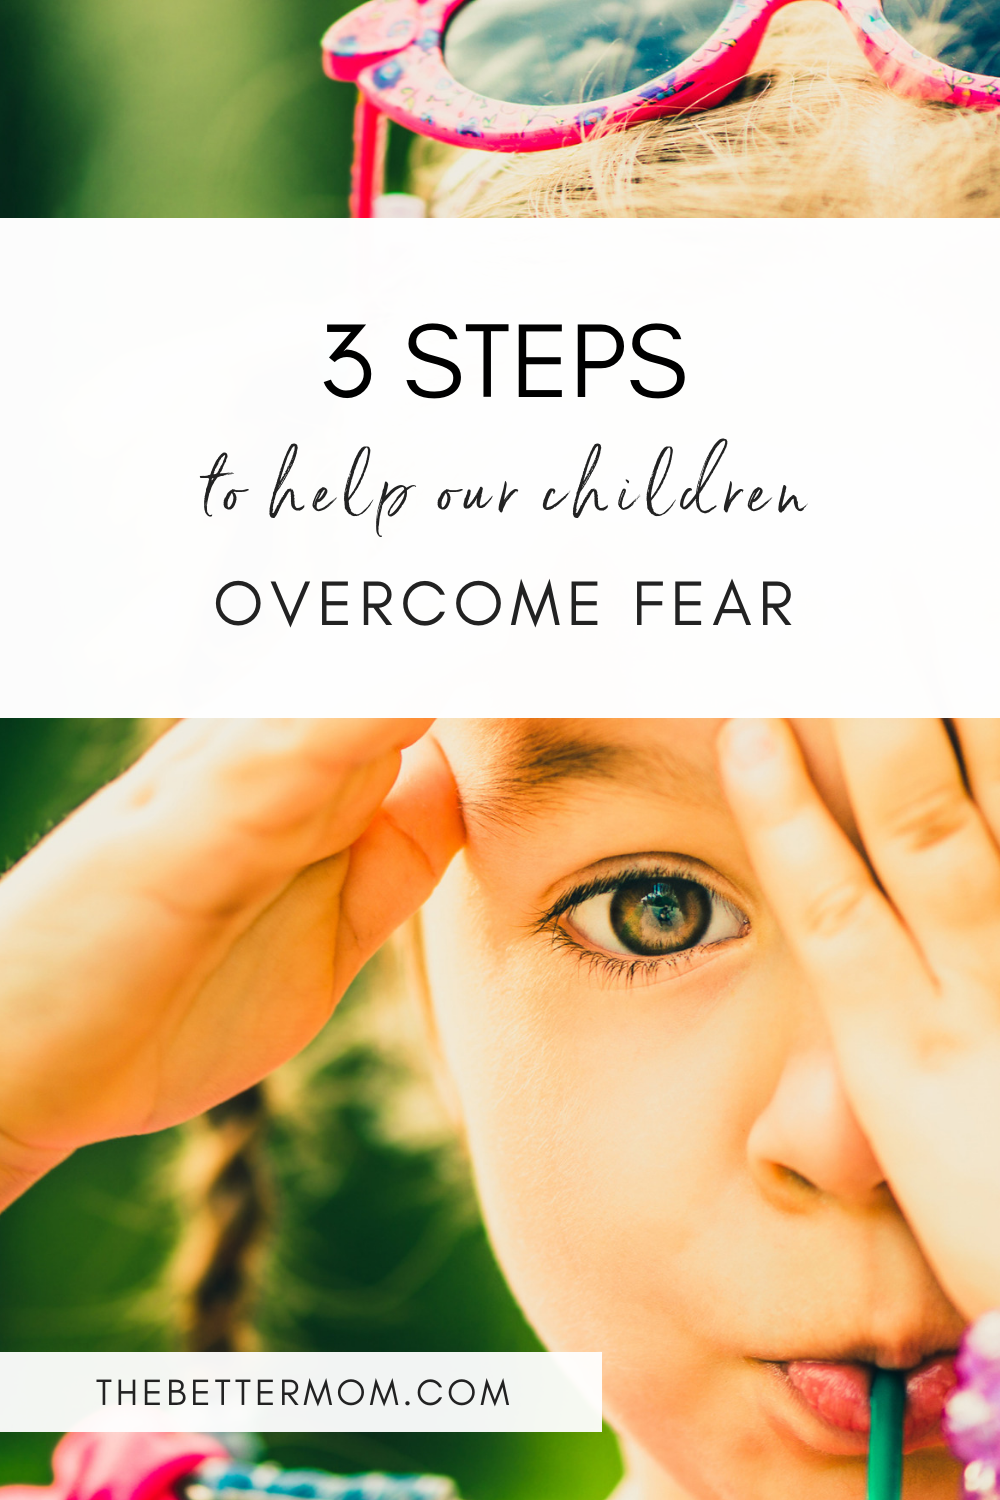 We know God does not want us, or our children, to suffer from fear, whether real or imagined. But for many of us, the struggle is still very much a part of our lives. We need these promises from Scripture and practical tools to help!